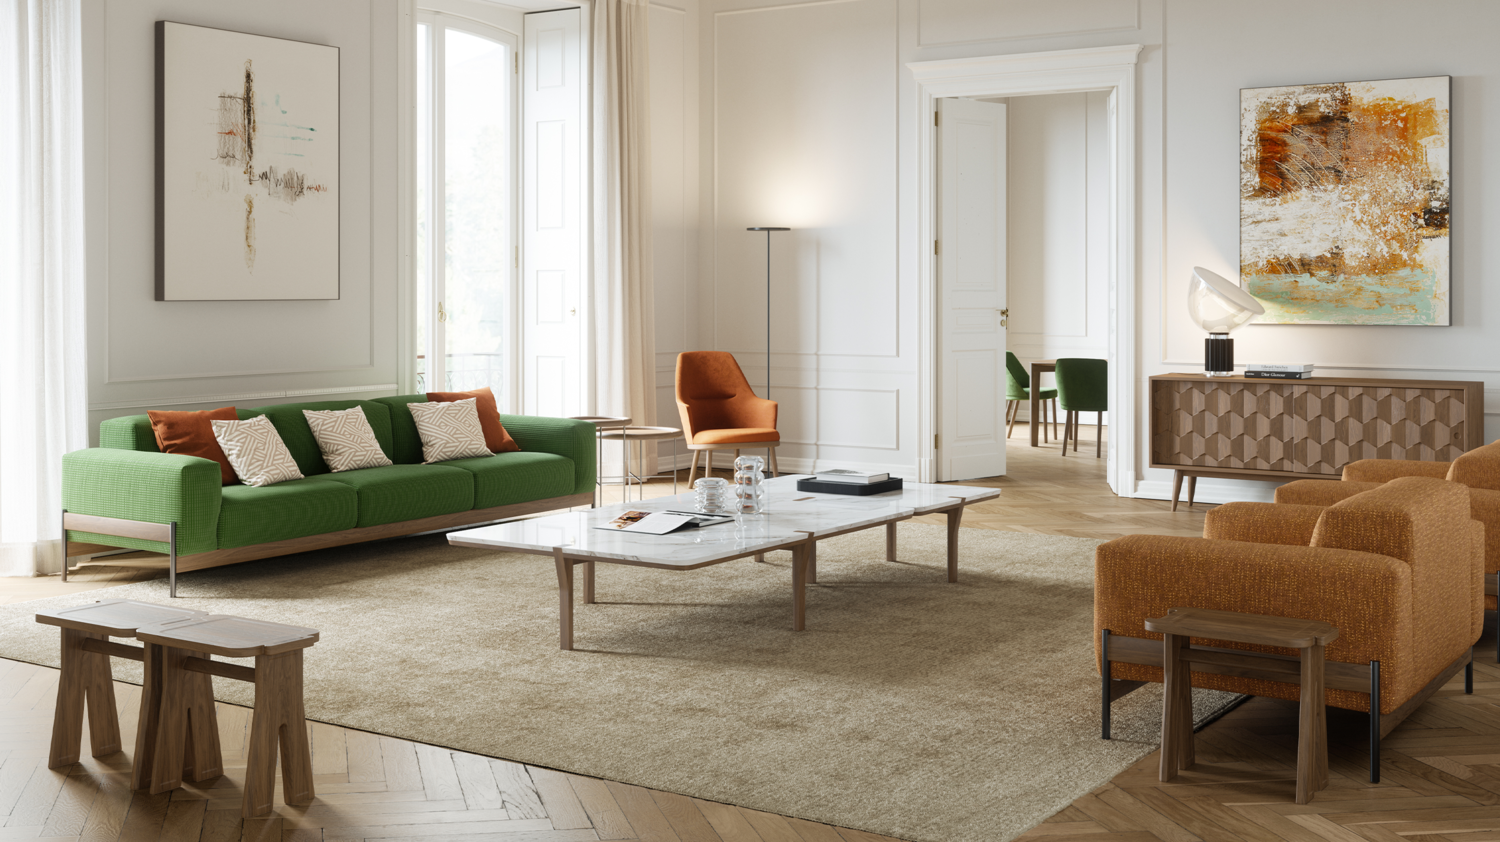 Wewood - Portuguese Joinery | Timeless Furniture Design